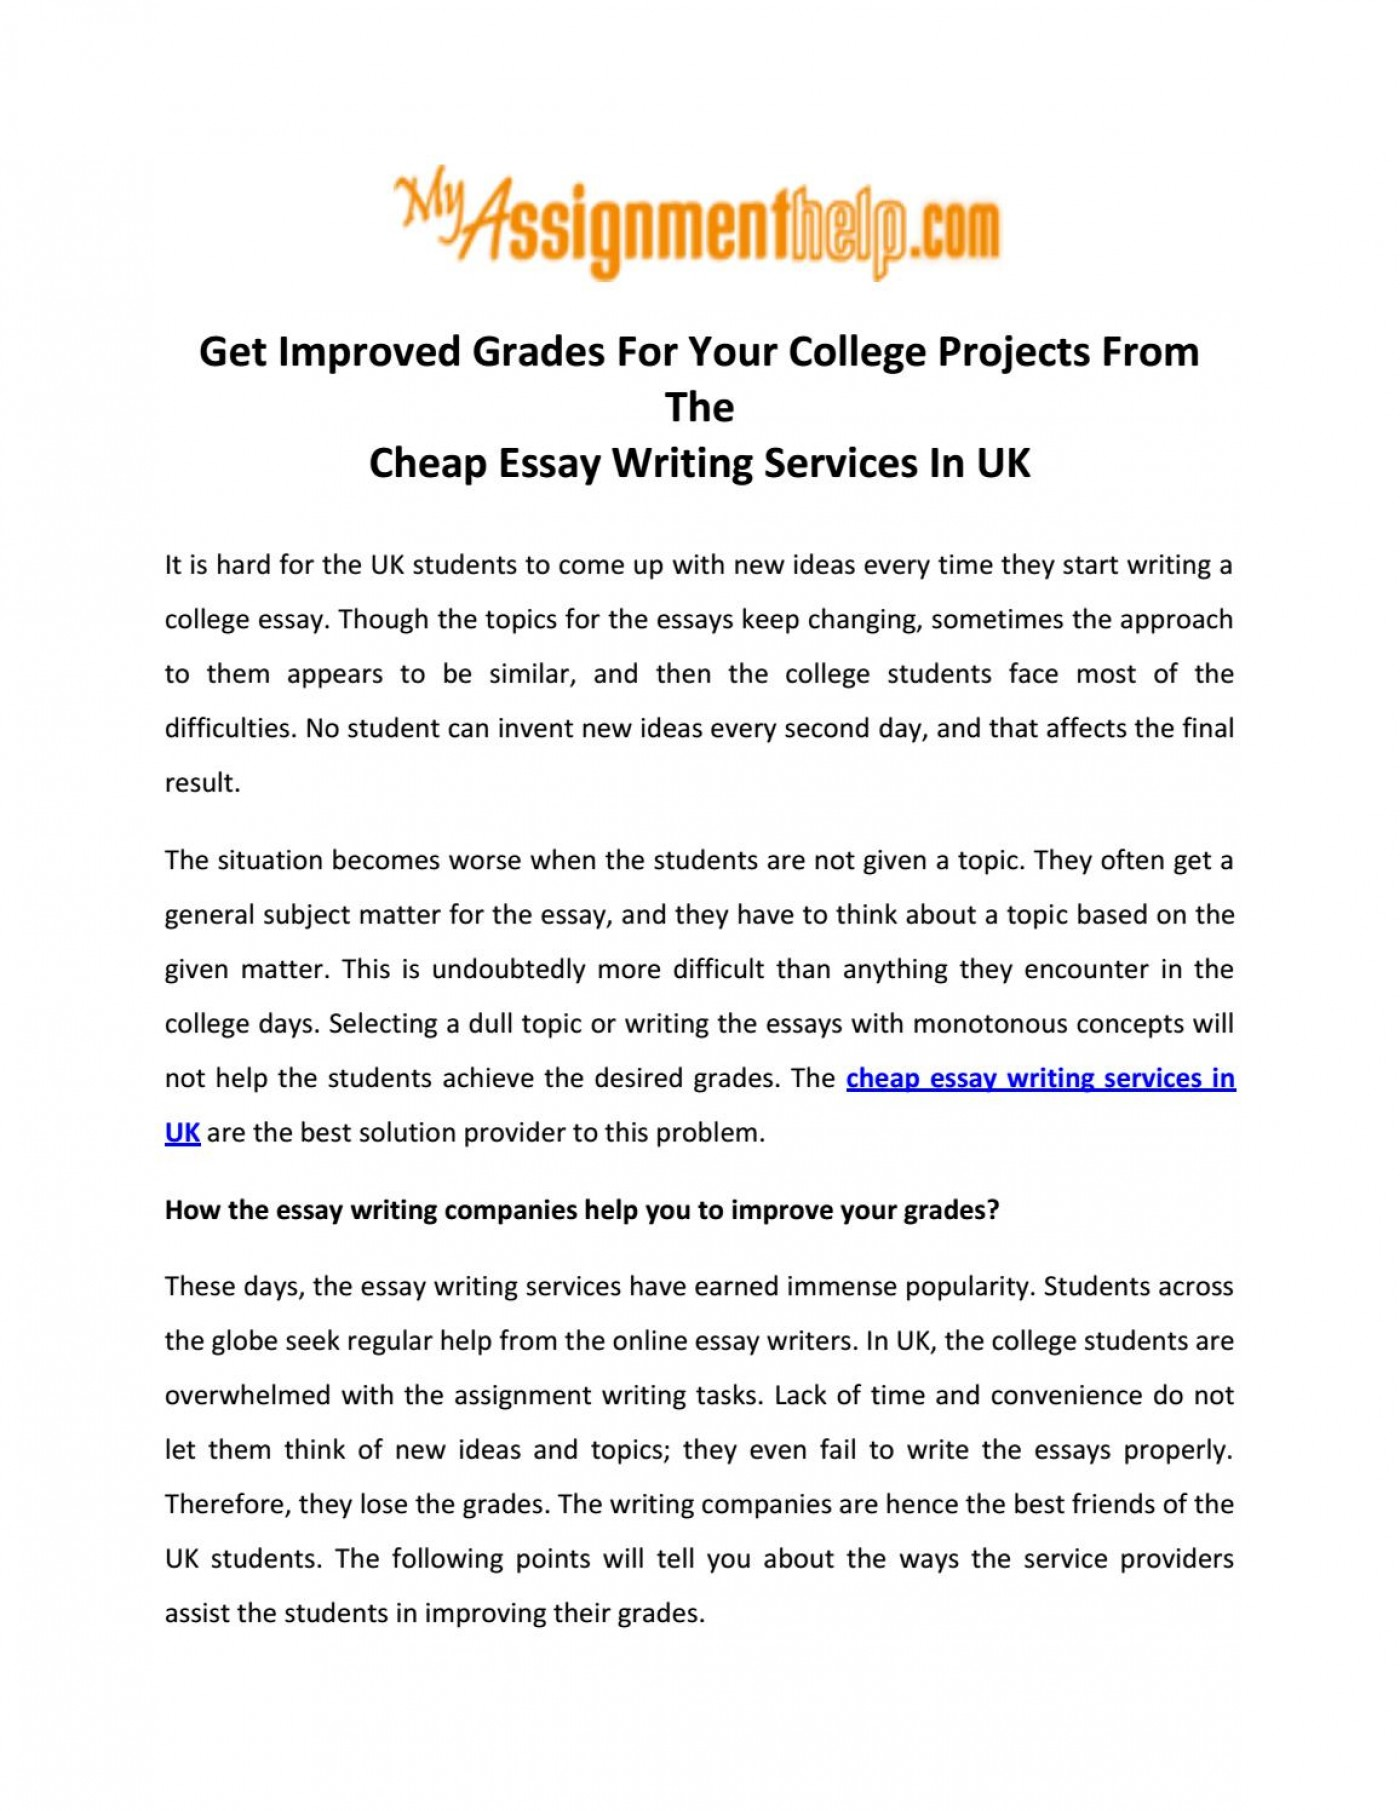 011 Page 1 Essay Example Cheap Writing Unusual Service Reddit Cheapest Review Services Reviews Blog 1400